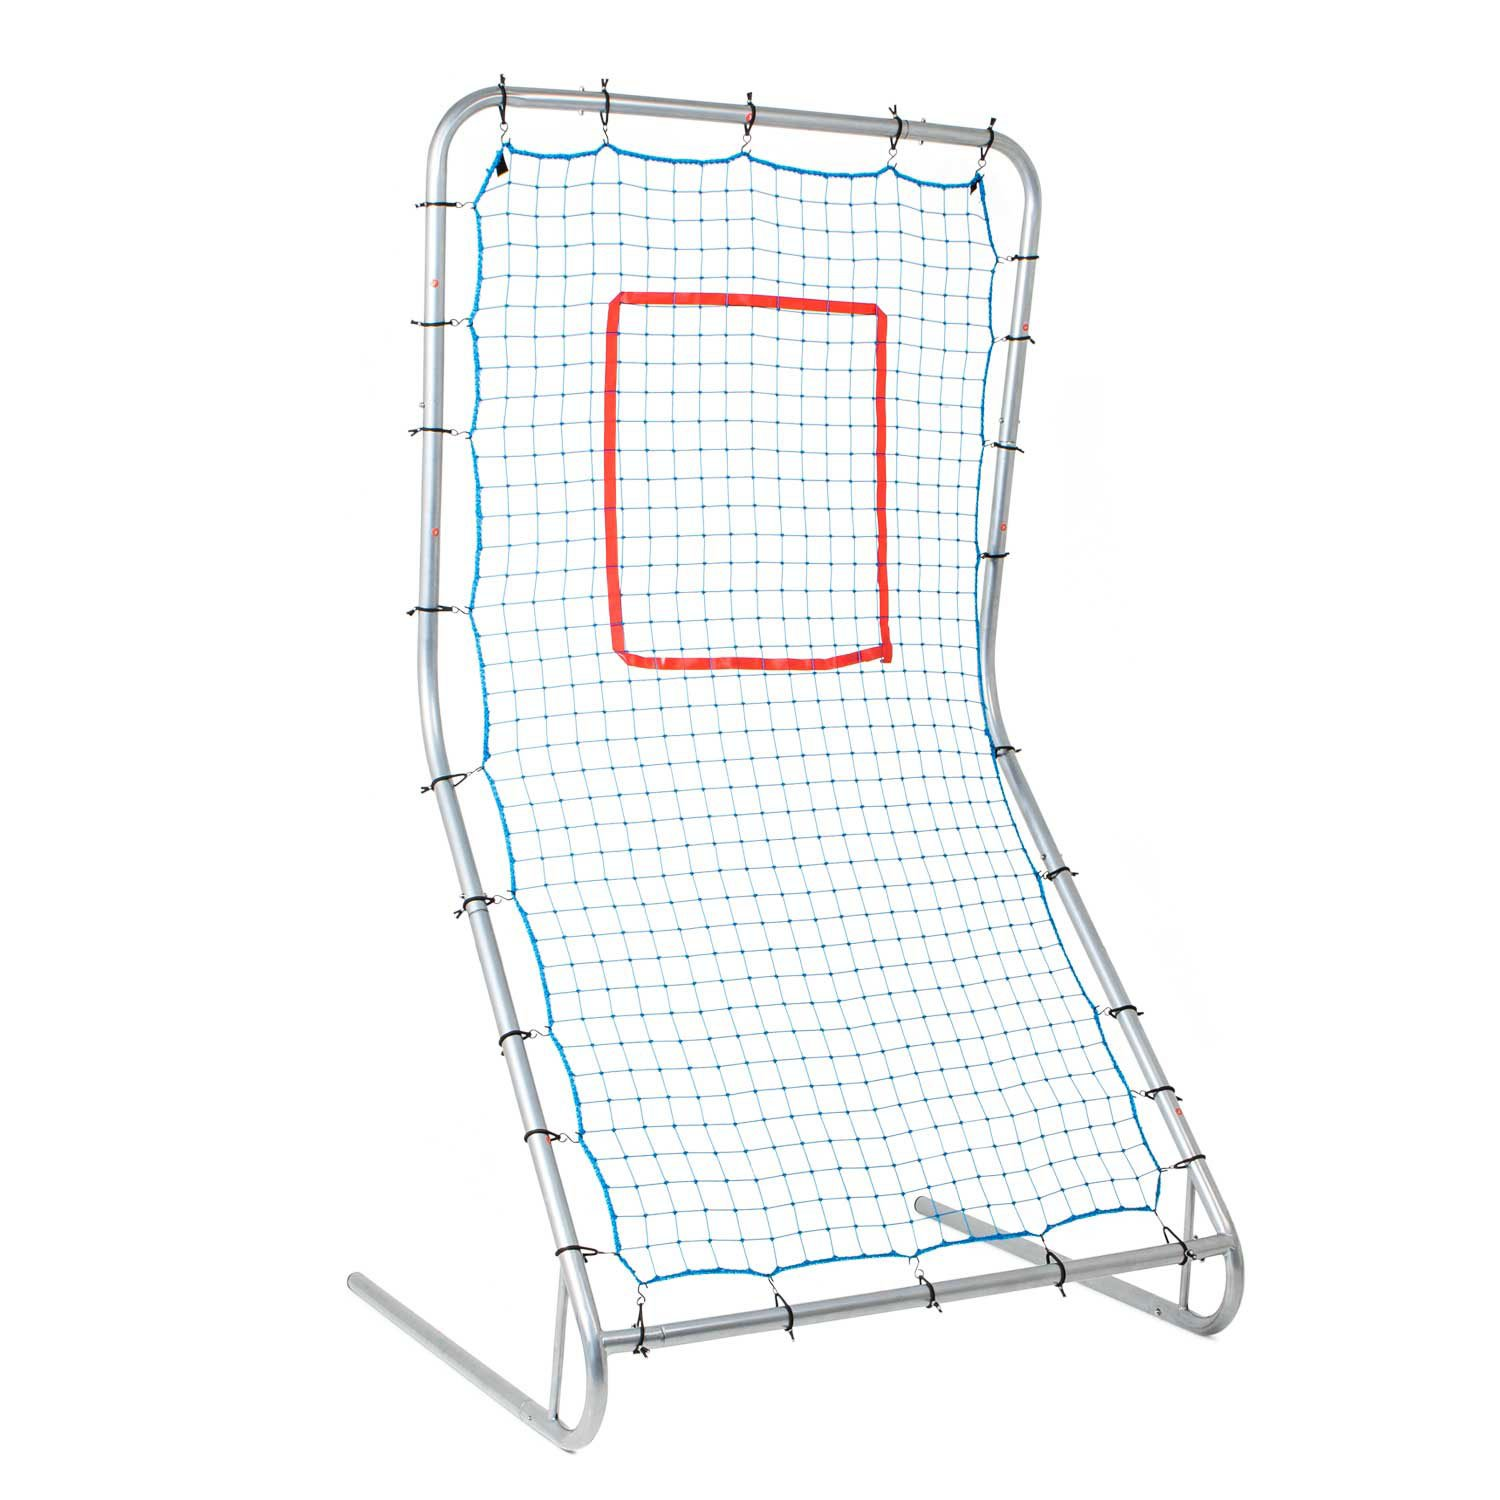 Champion Sports Baseball Training, Pitching, Fielding Net with Strike Zone for Kids, Adults- Premium, Durable Rebounder Pitcher Nets - Softball Training Equipment for Little League, Varsity Practice by Champion Sports